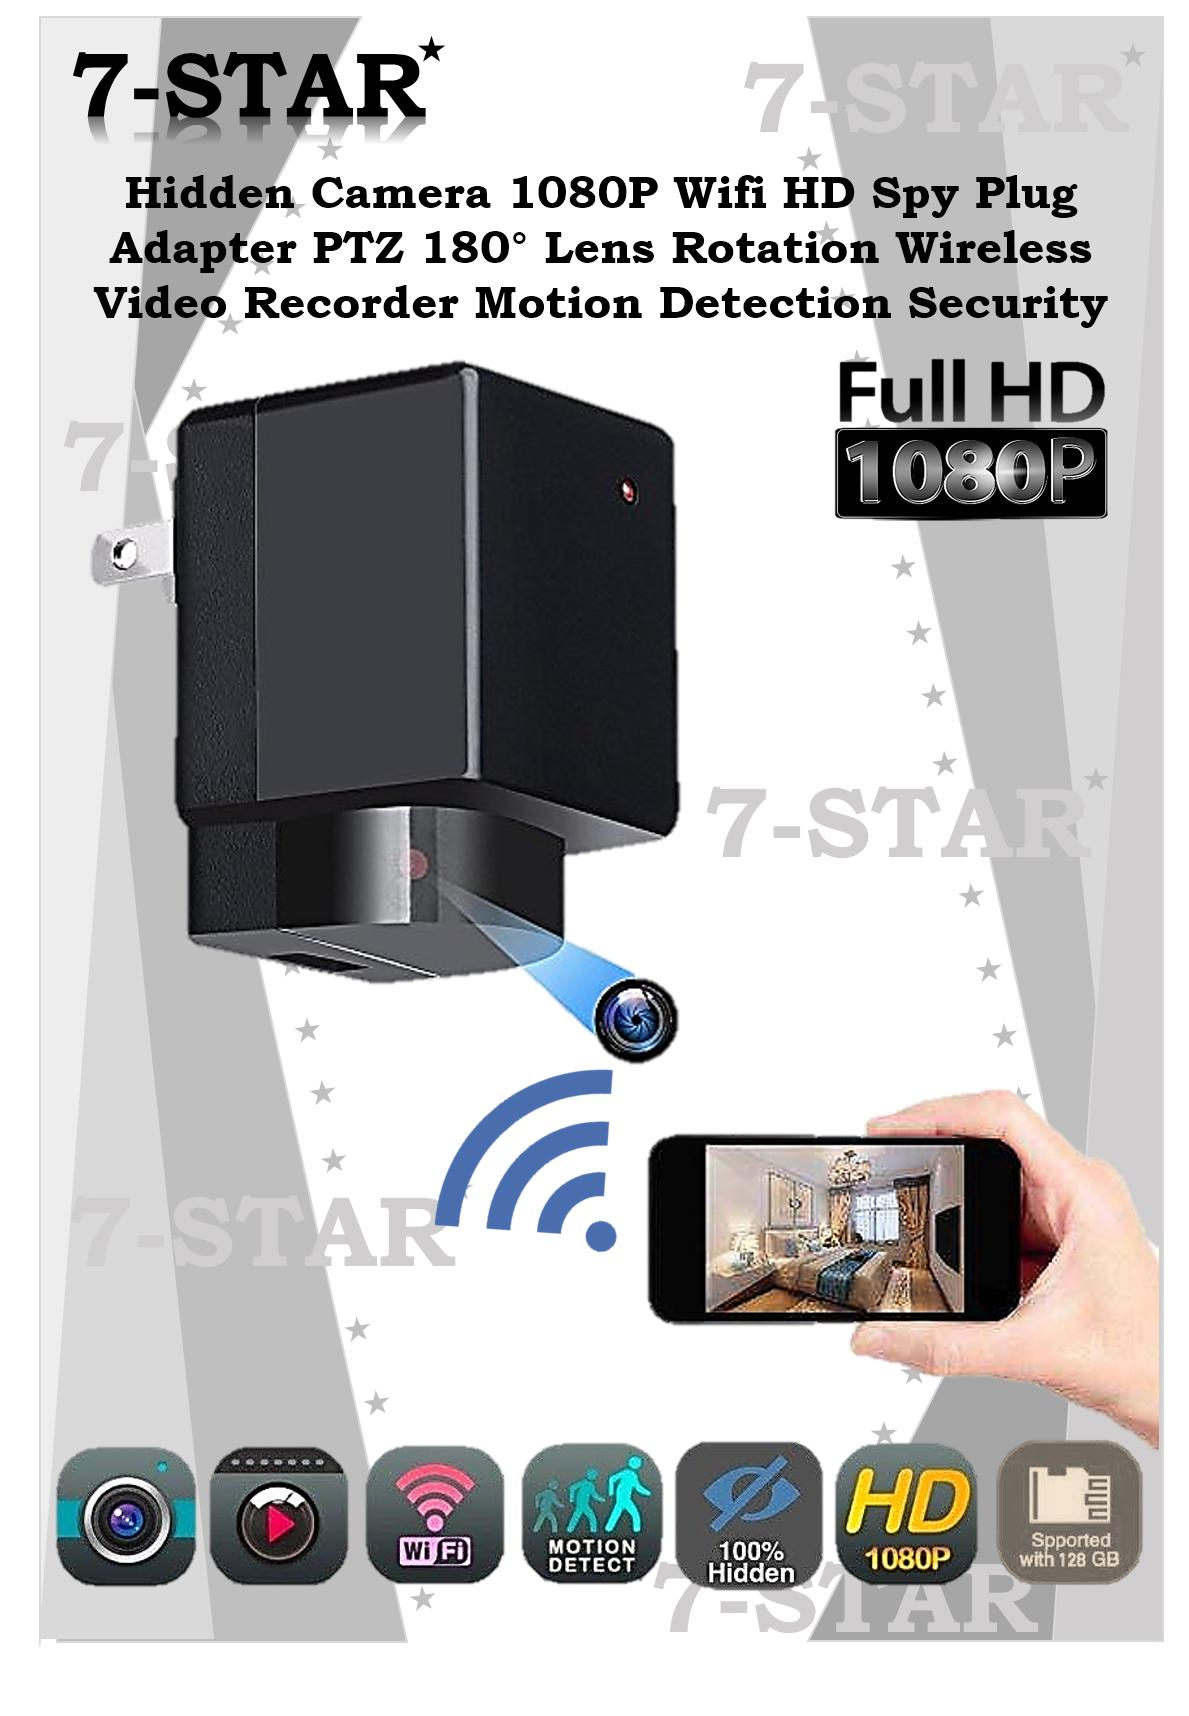 Hidden Camera Full-HD 1080P Wifi Spy Plug Charger Adaptor PTZ 180° Rotating  Lens Rotation Wireless Video Recorder Motion Detection Security IP Spy